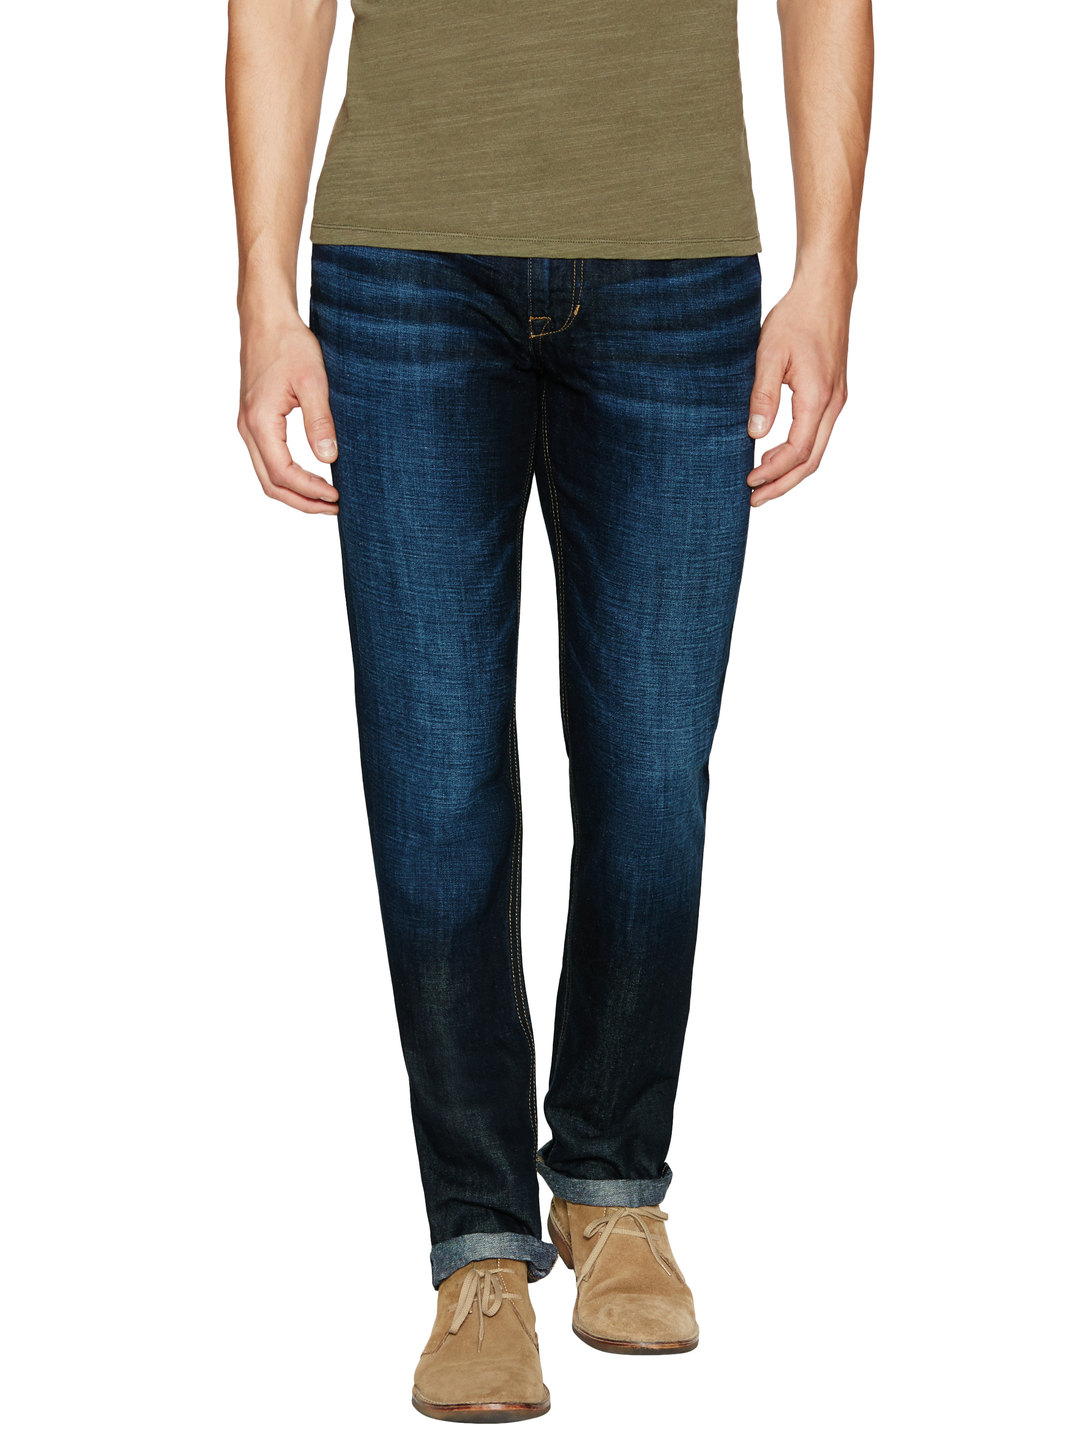 joes jeans Classic Relaxed Fit Jeans